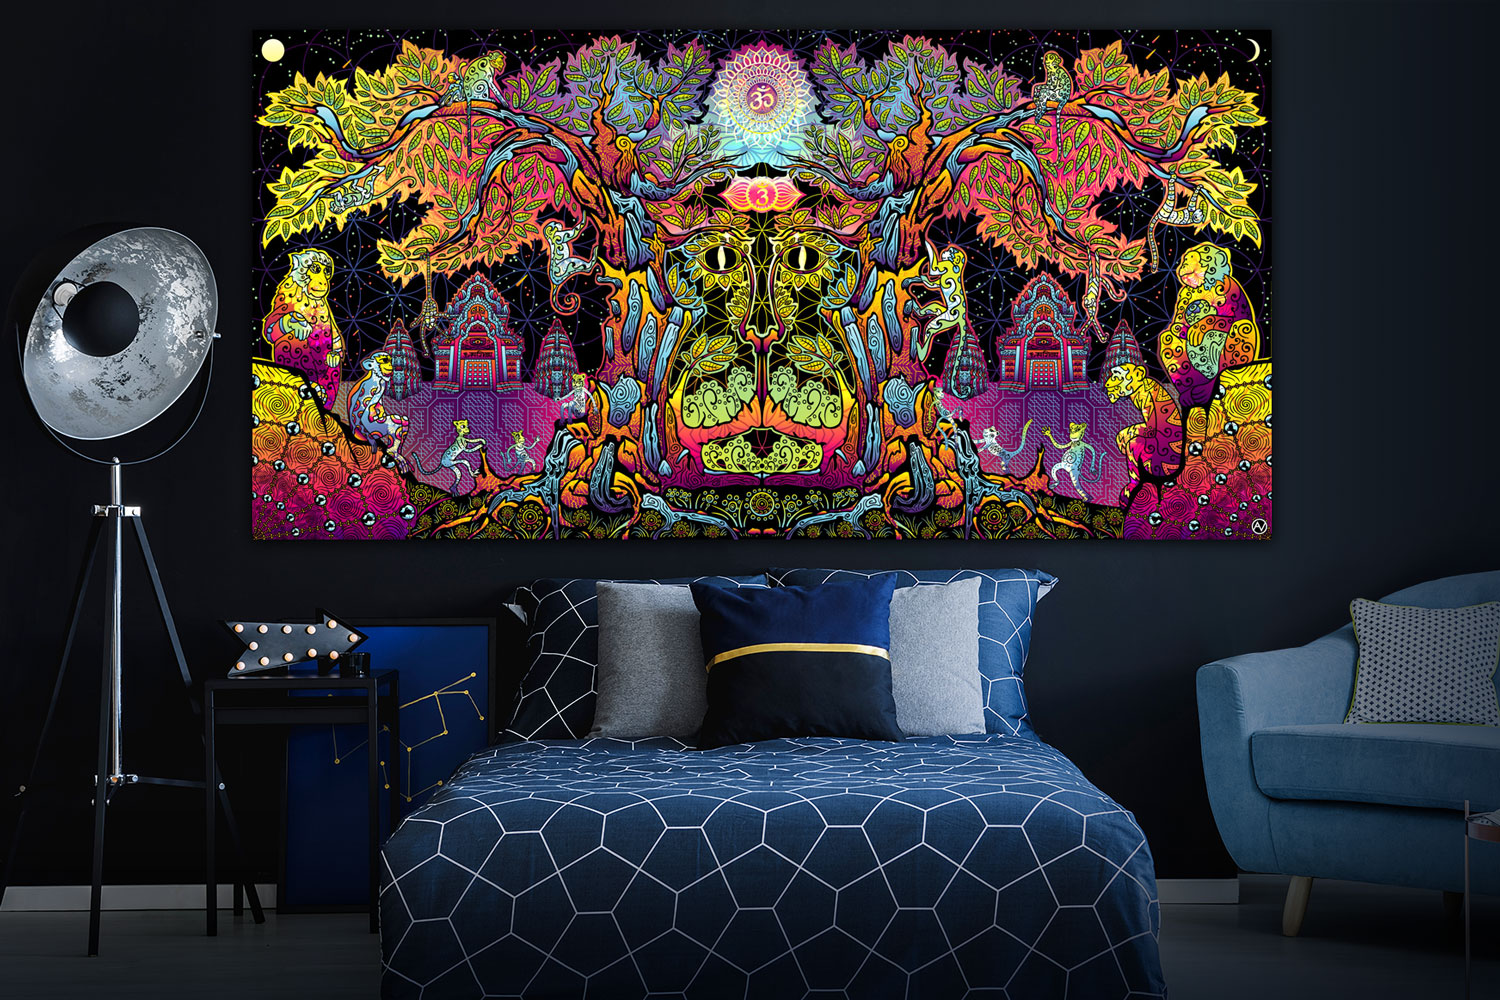 Lord Hanuman Psychedelic Art Fluorescent Design Tapestry in the interior preview